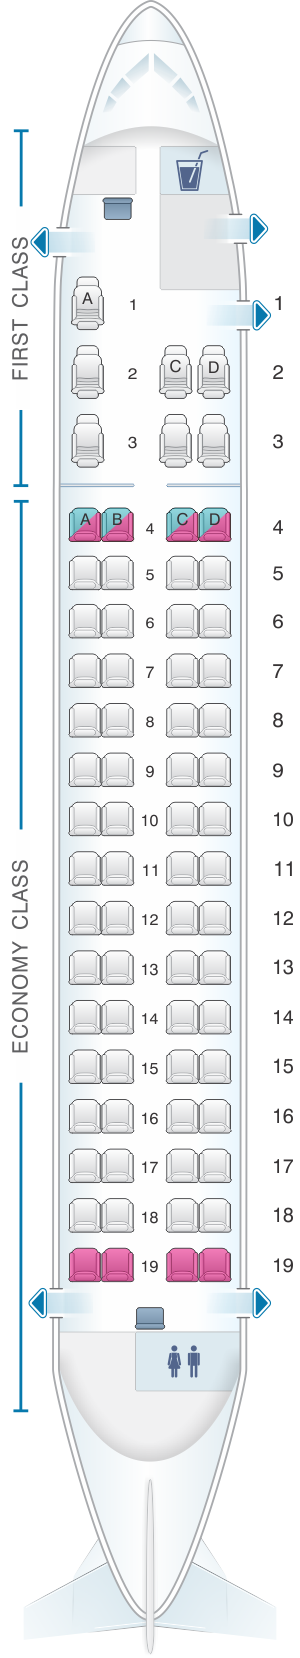 Seat map for Island Air Bombardier Q400